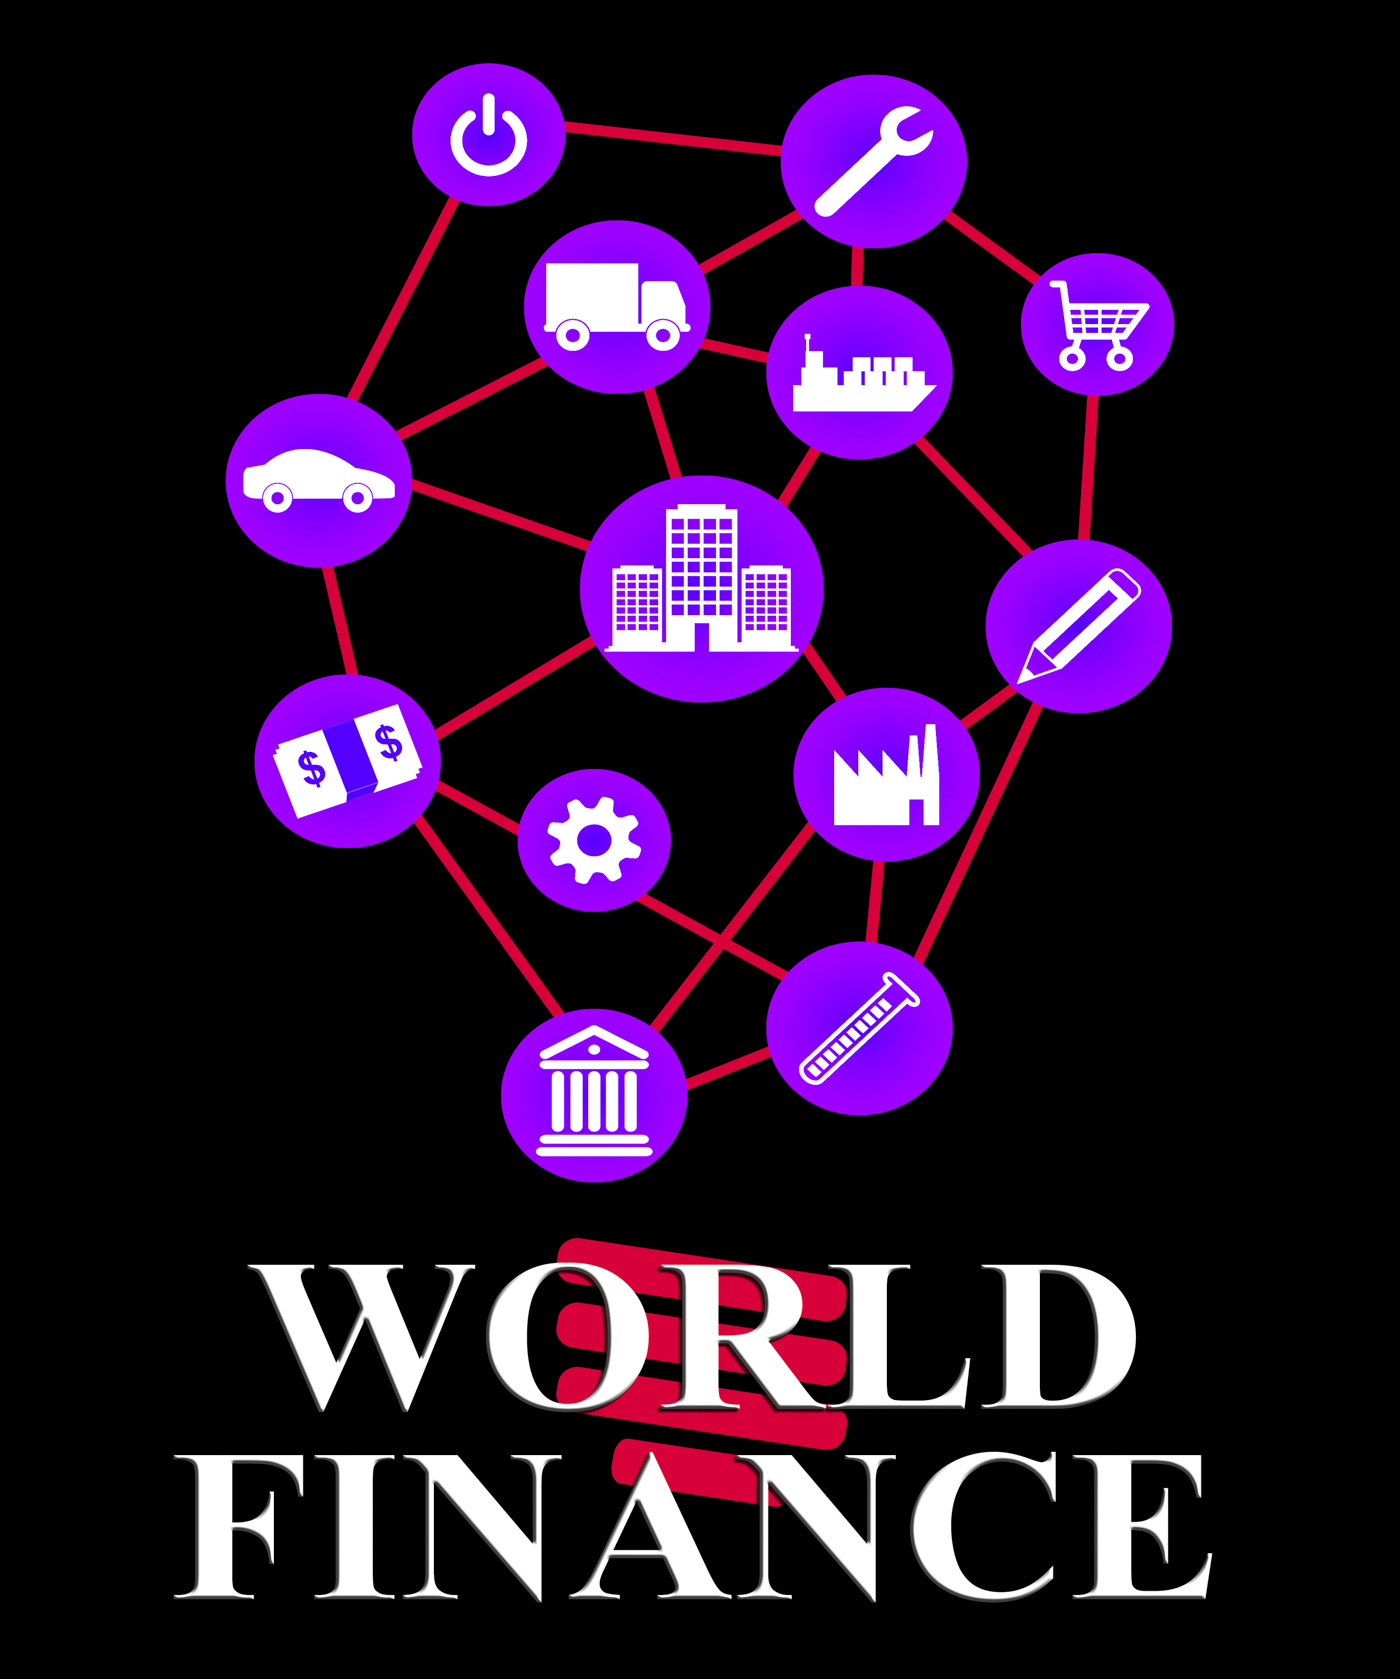 World finance represents globalisation money and profit photo